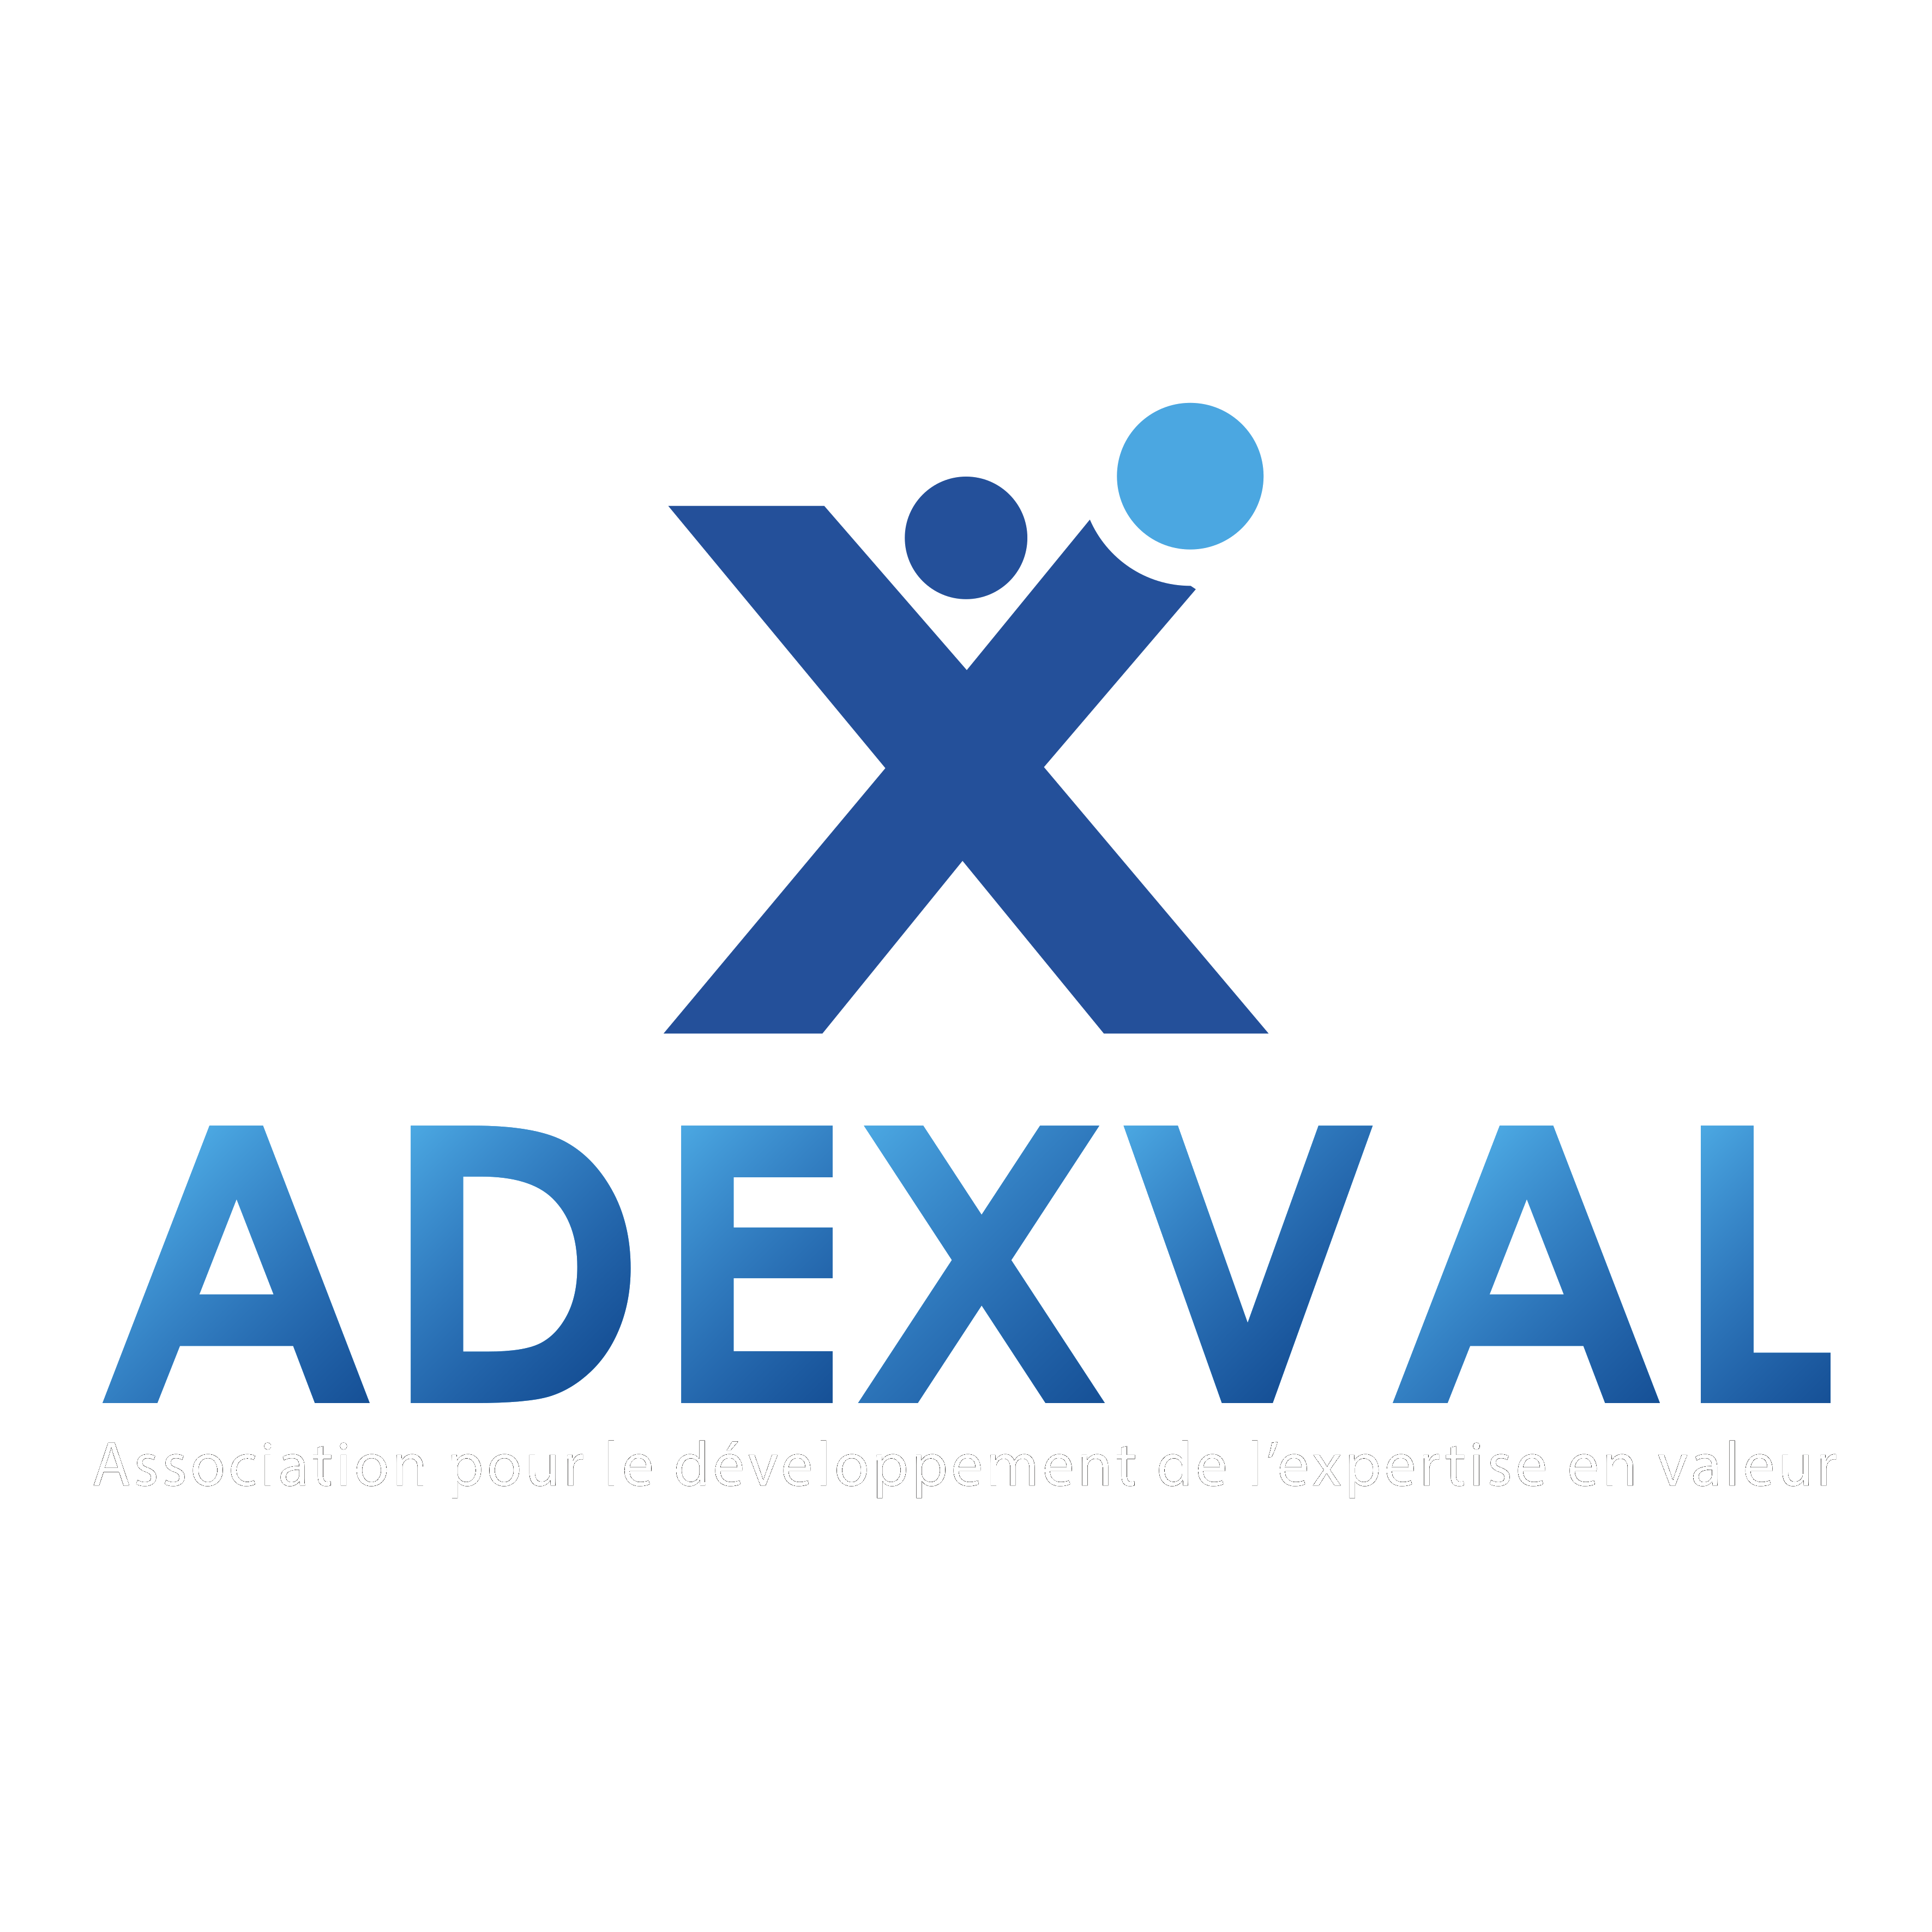 ADEXVAL